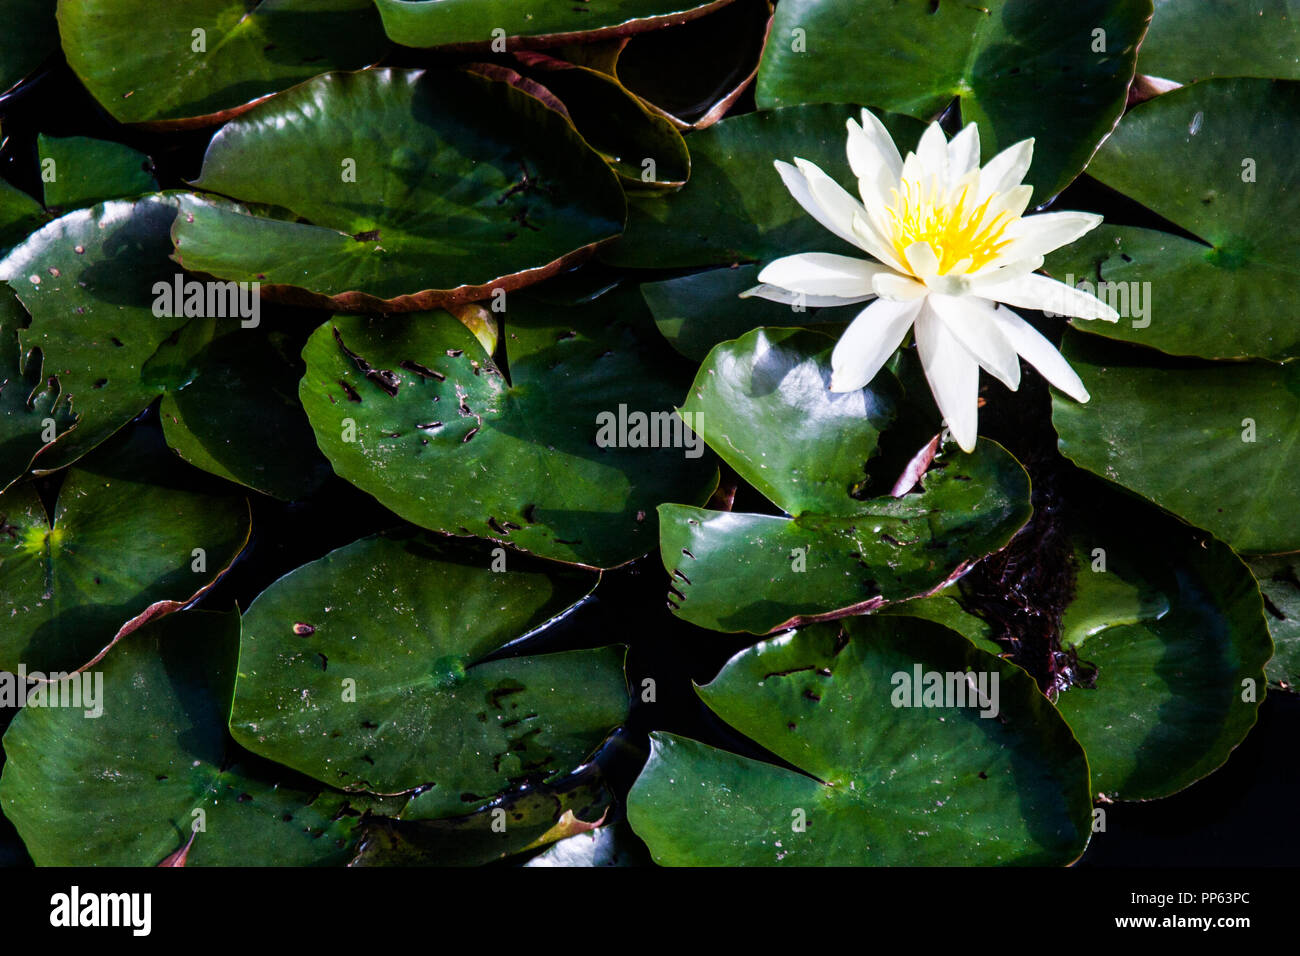 Nature Wallpaper Background Of White Lotus Flower Also Known As